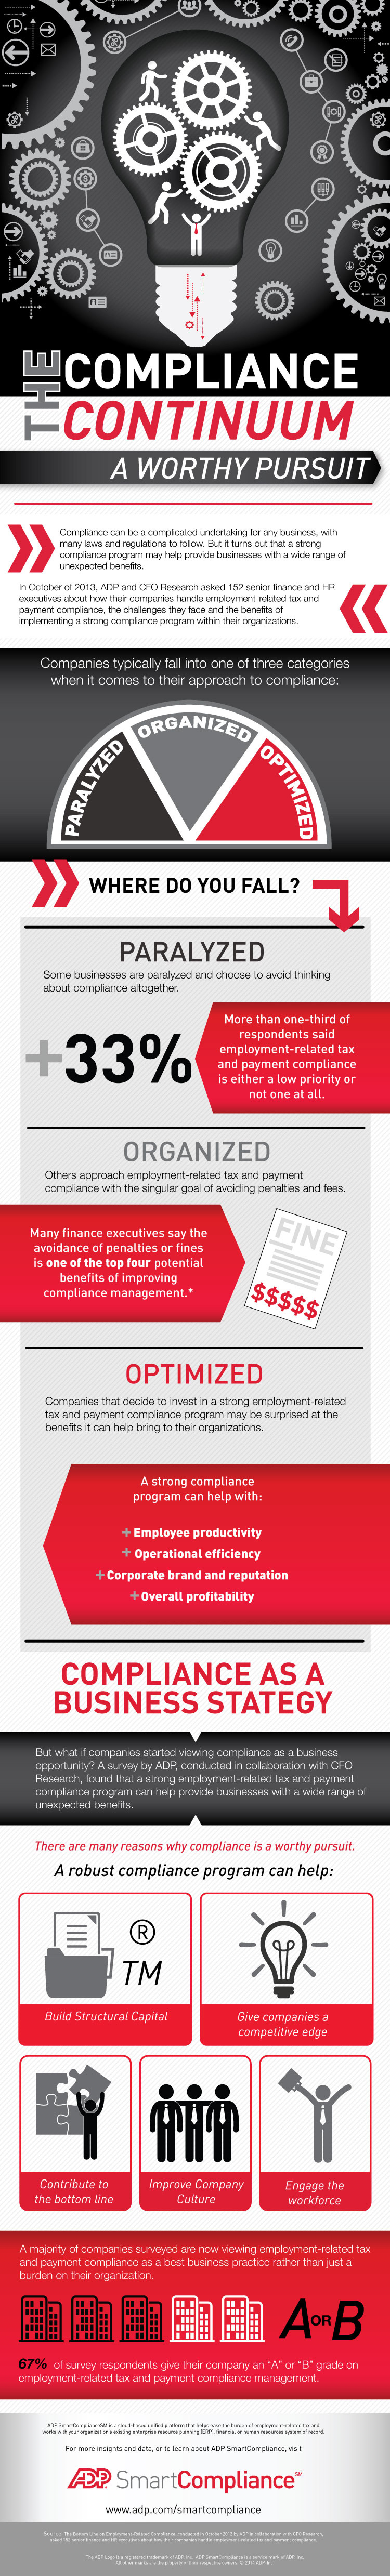 The Compliance Continuum Infographic